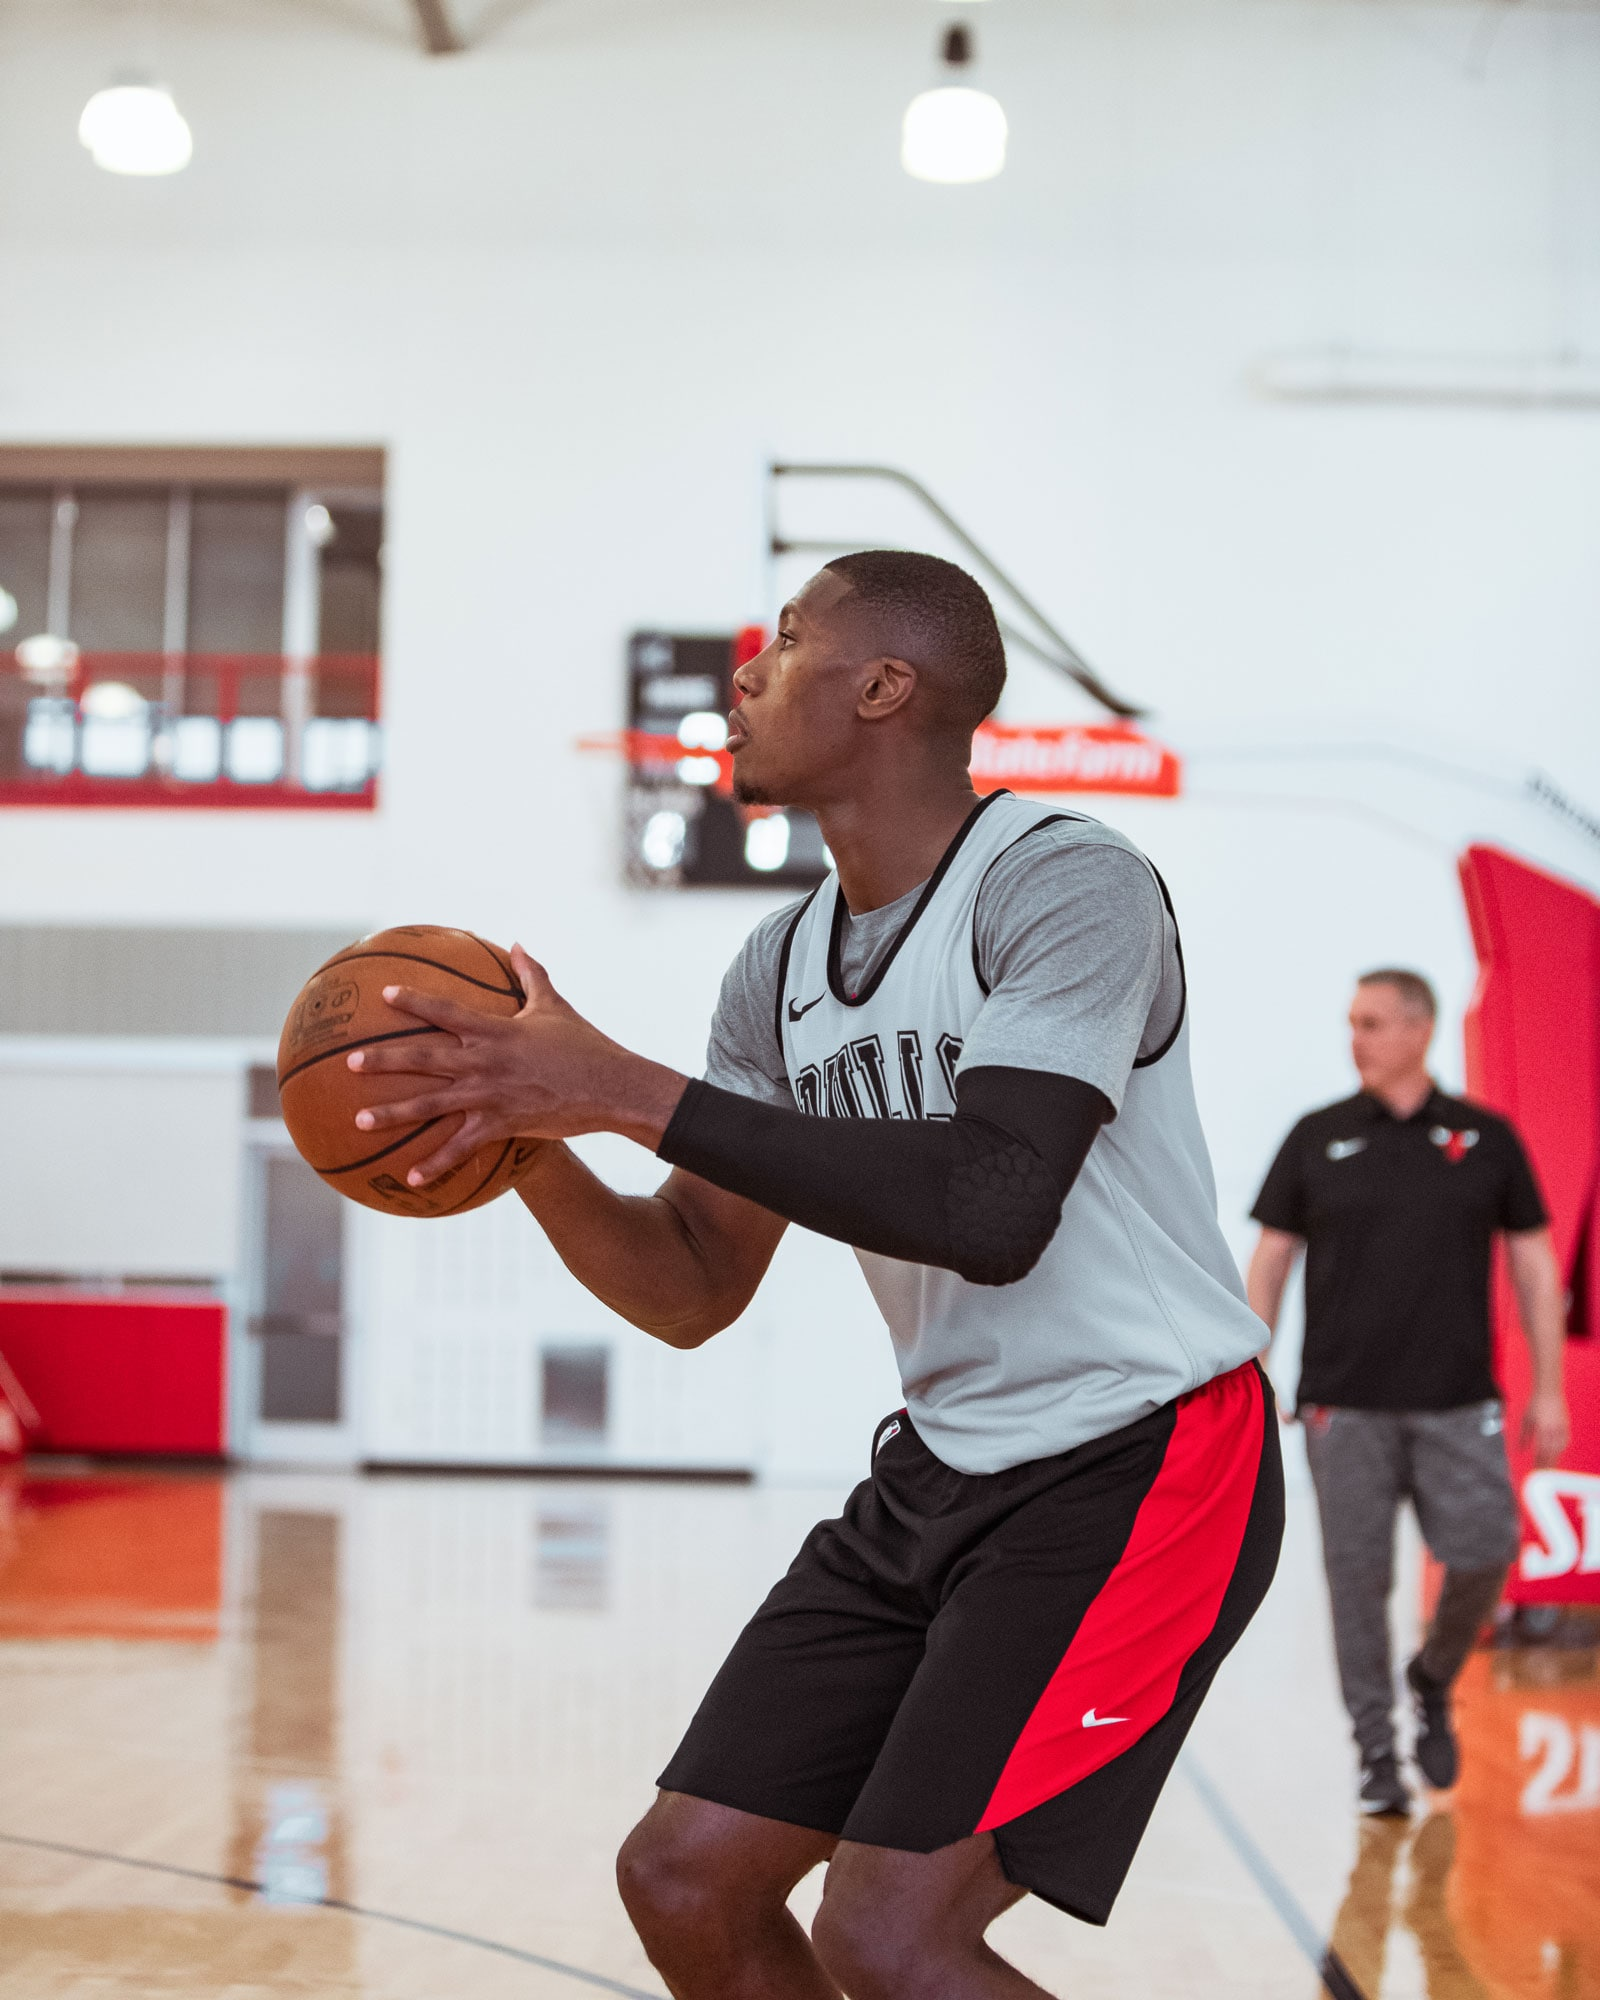 Kris Dunn shoots the ball during Training Camp